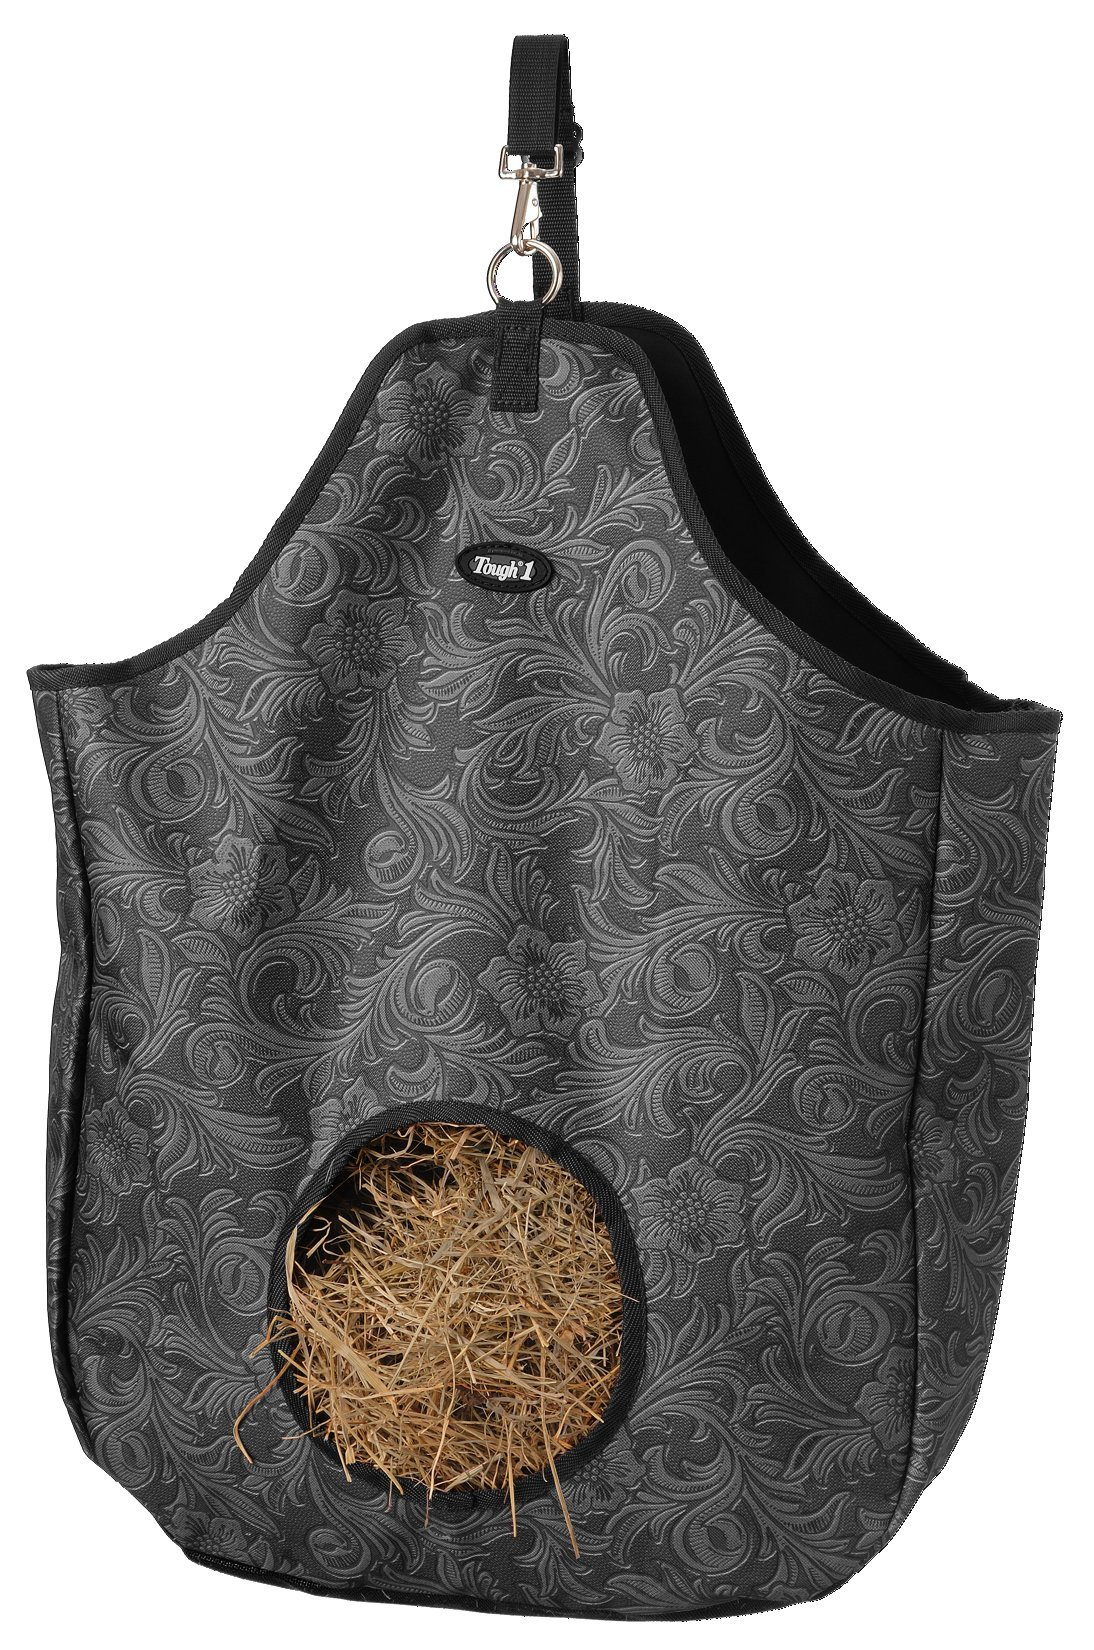 Tough 1 Nylon Hay Tote Bag in Prints, Tooled Leather Black by Tough 1